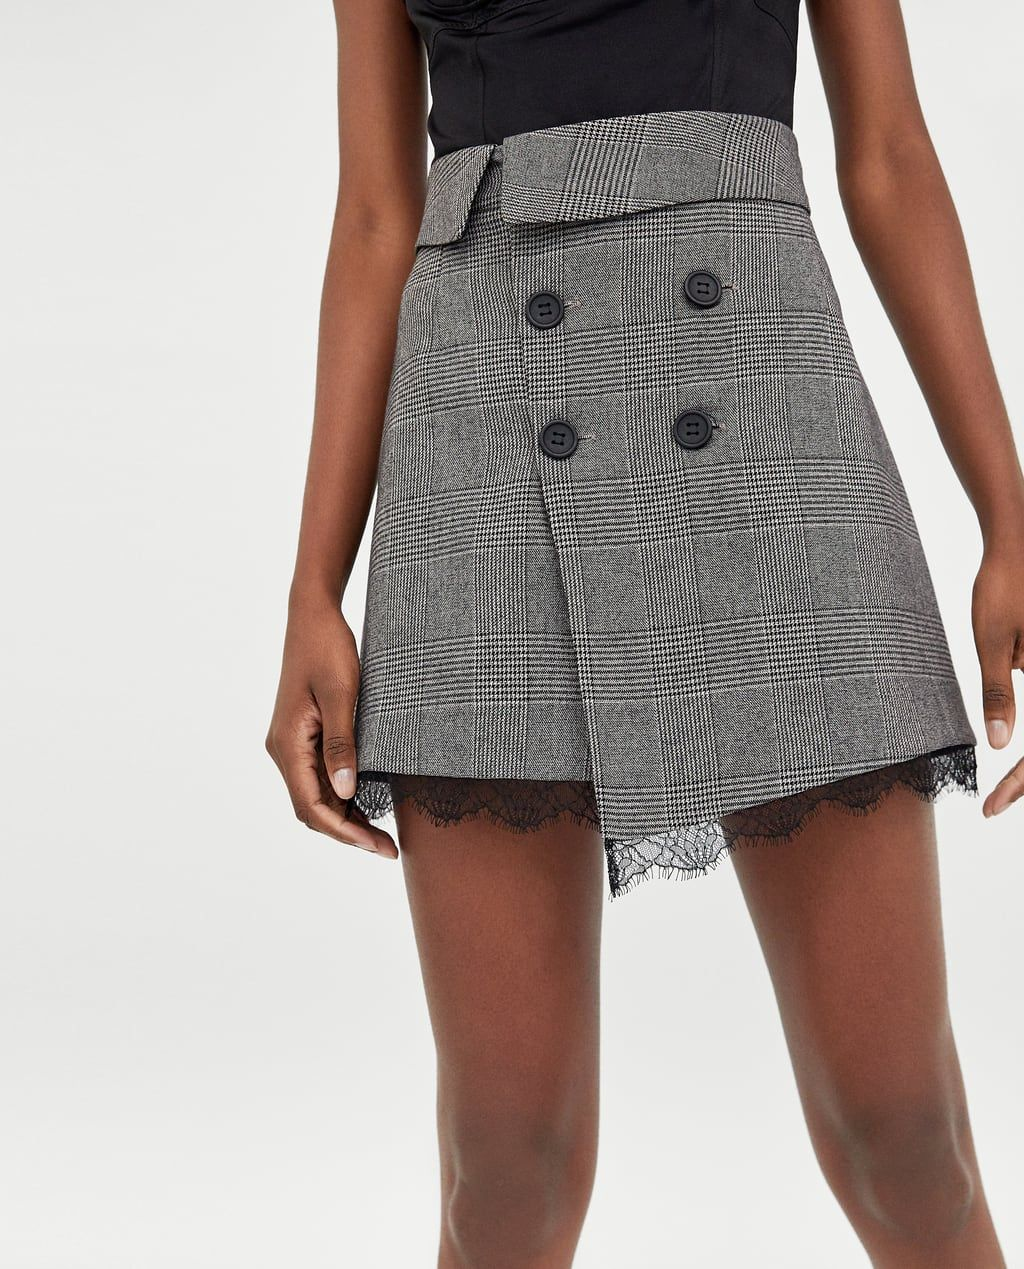 577c86a38 Image 2 of CHECKED MINI SKIRT WITH LACE TRIMS from Zara   Fashion_me ...